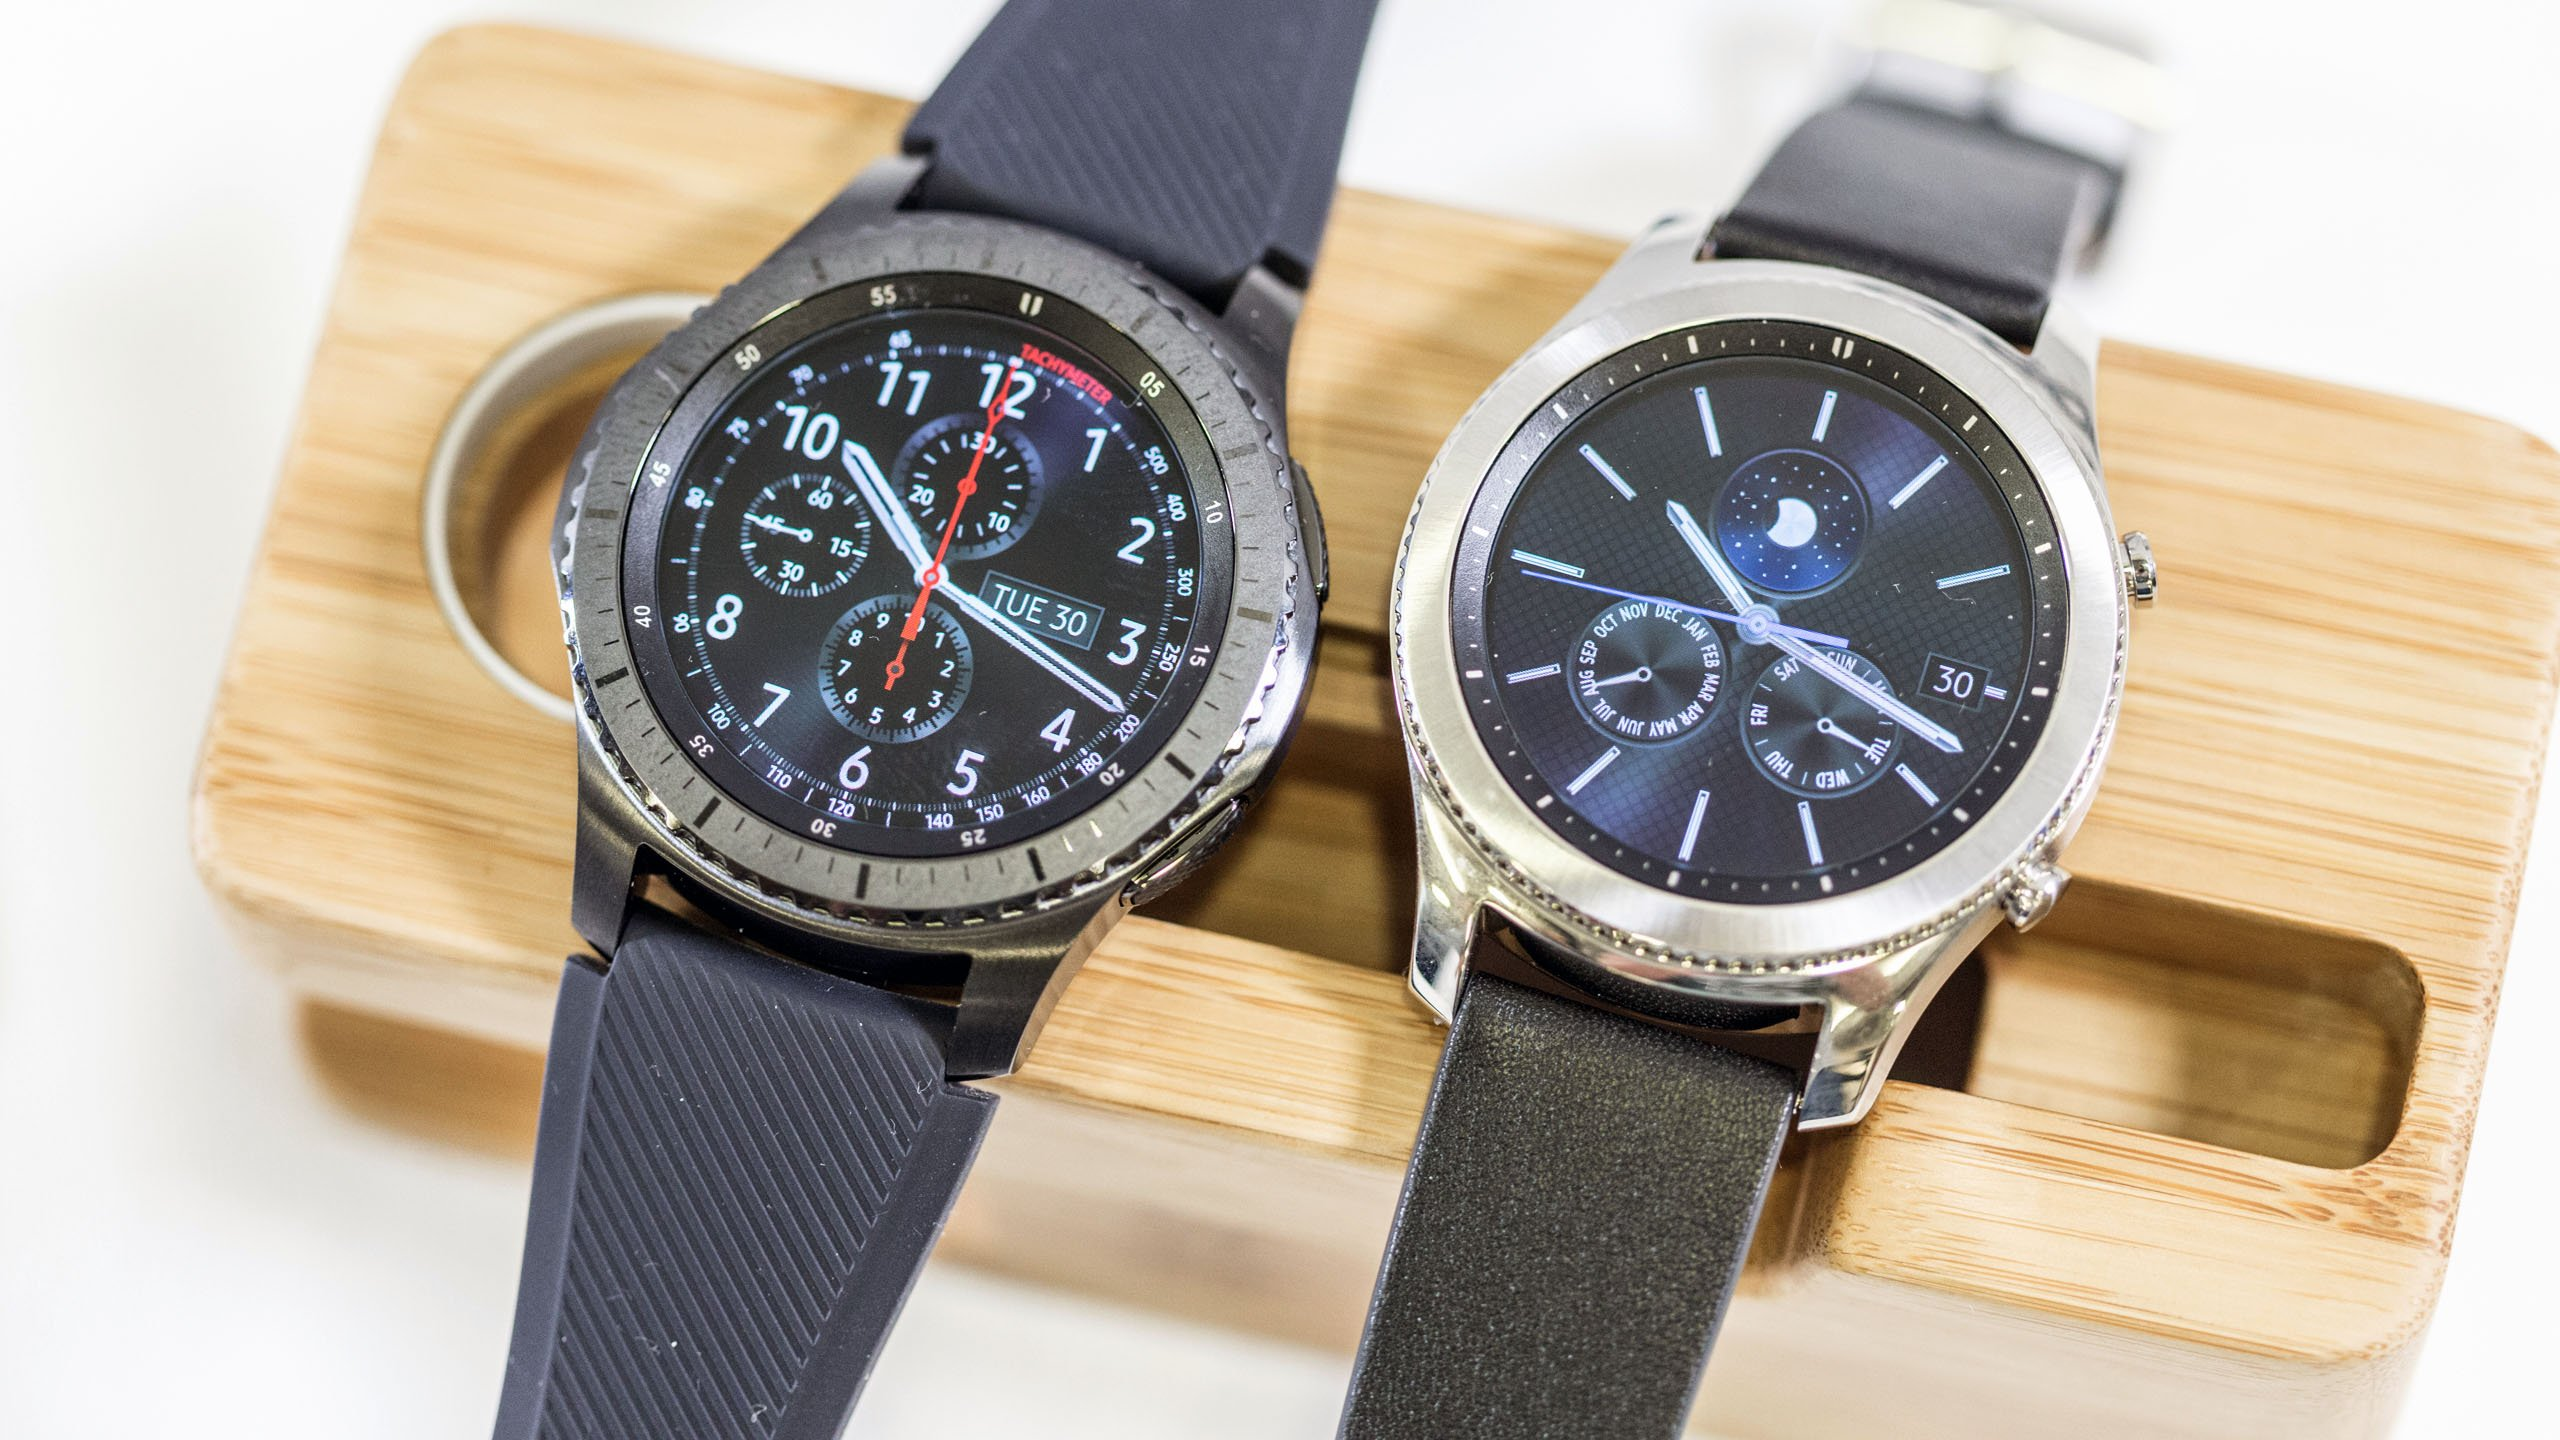 Samsung Gear S3 Review A Great Watch For Android Owners Manual Guide